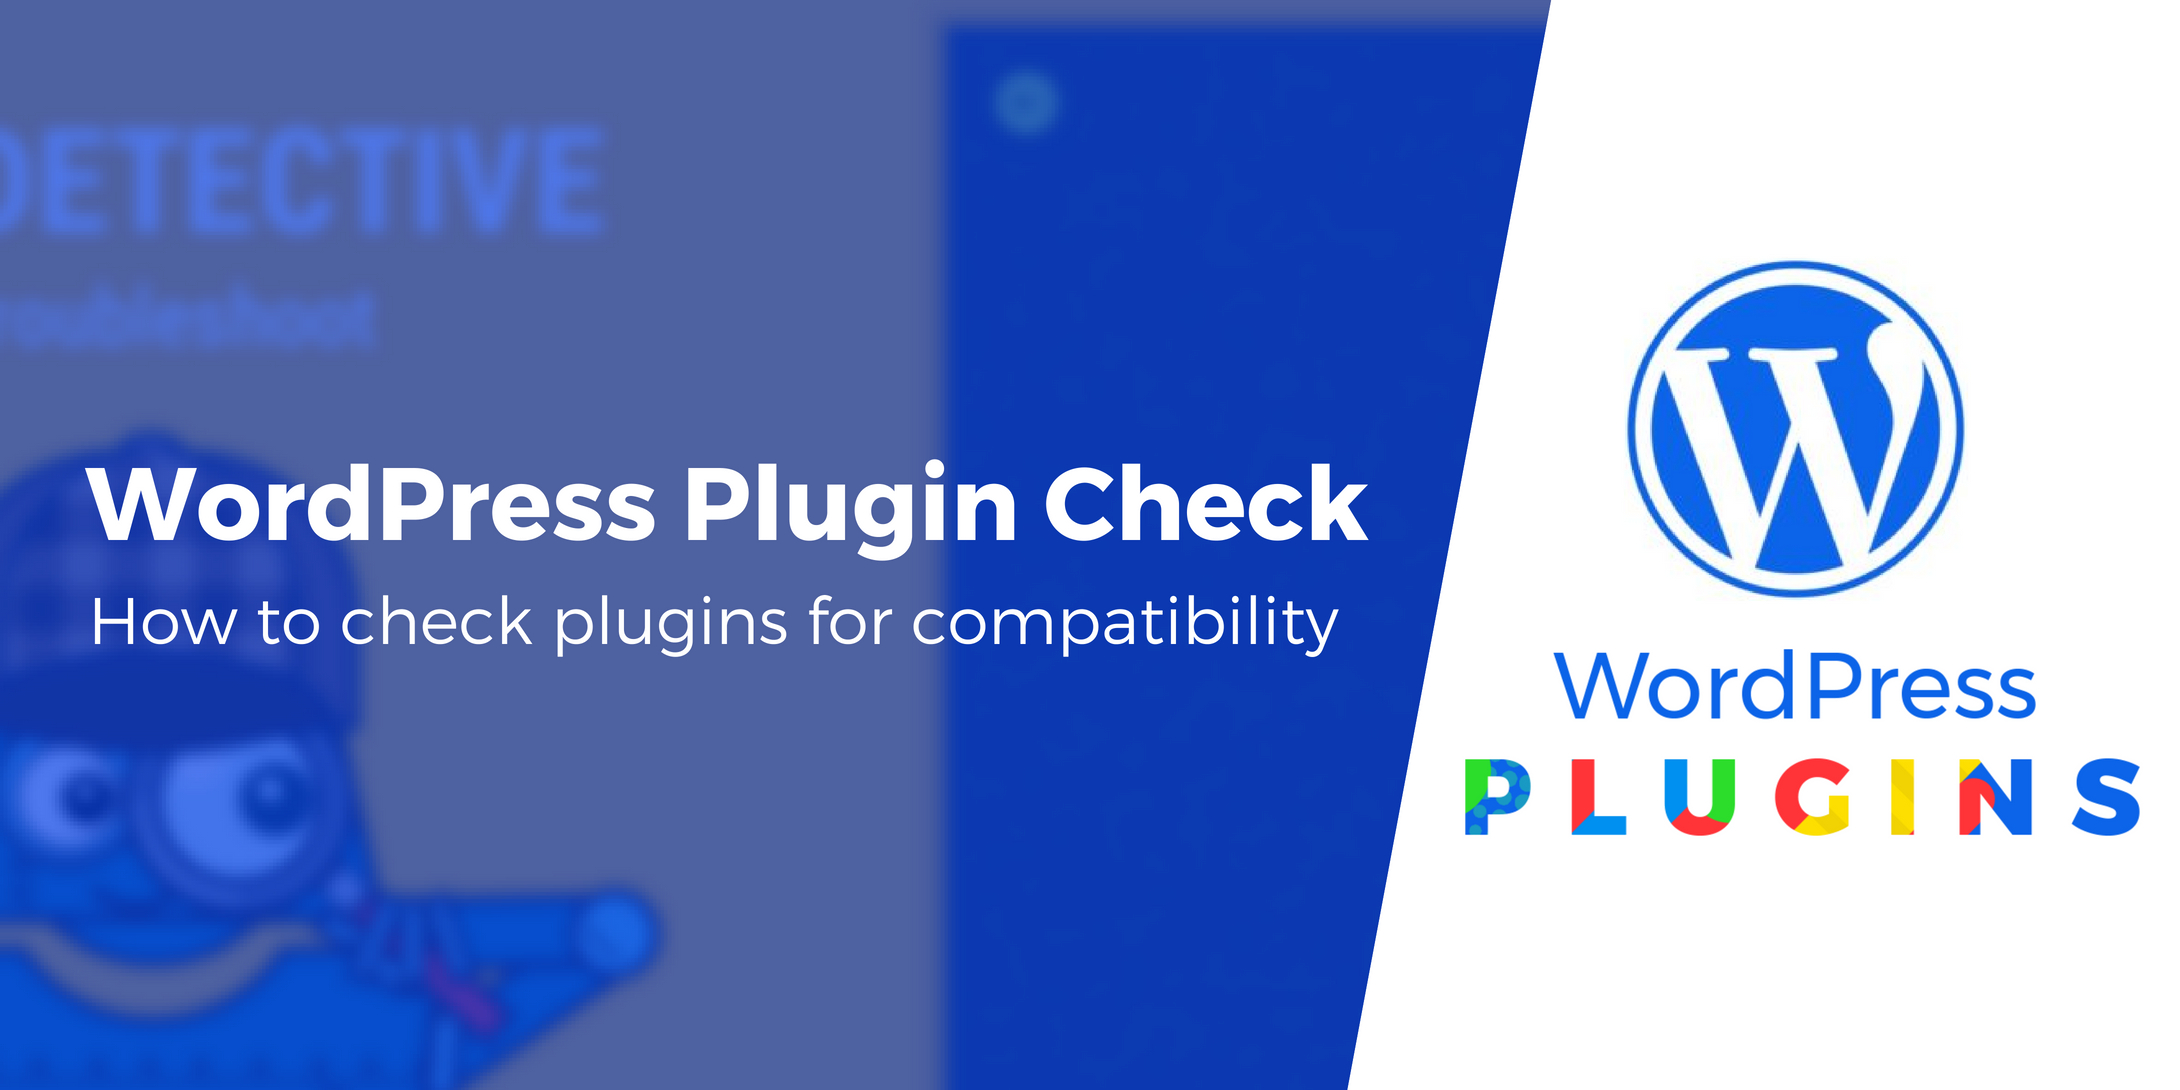 WordPress Plugin Check